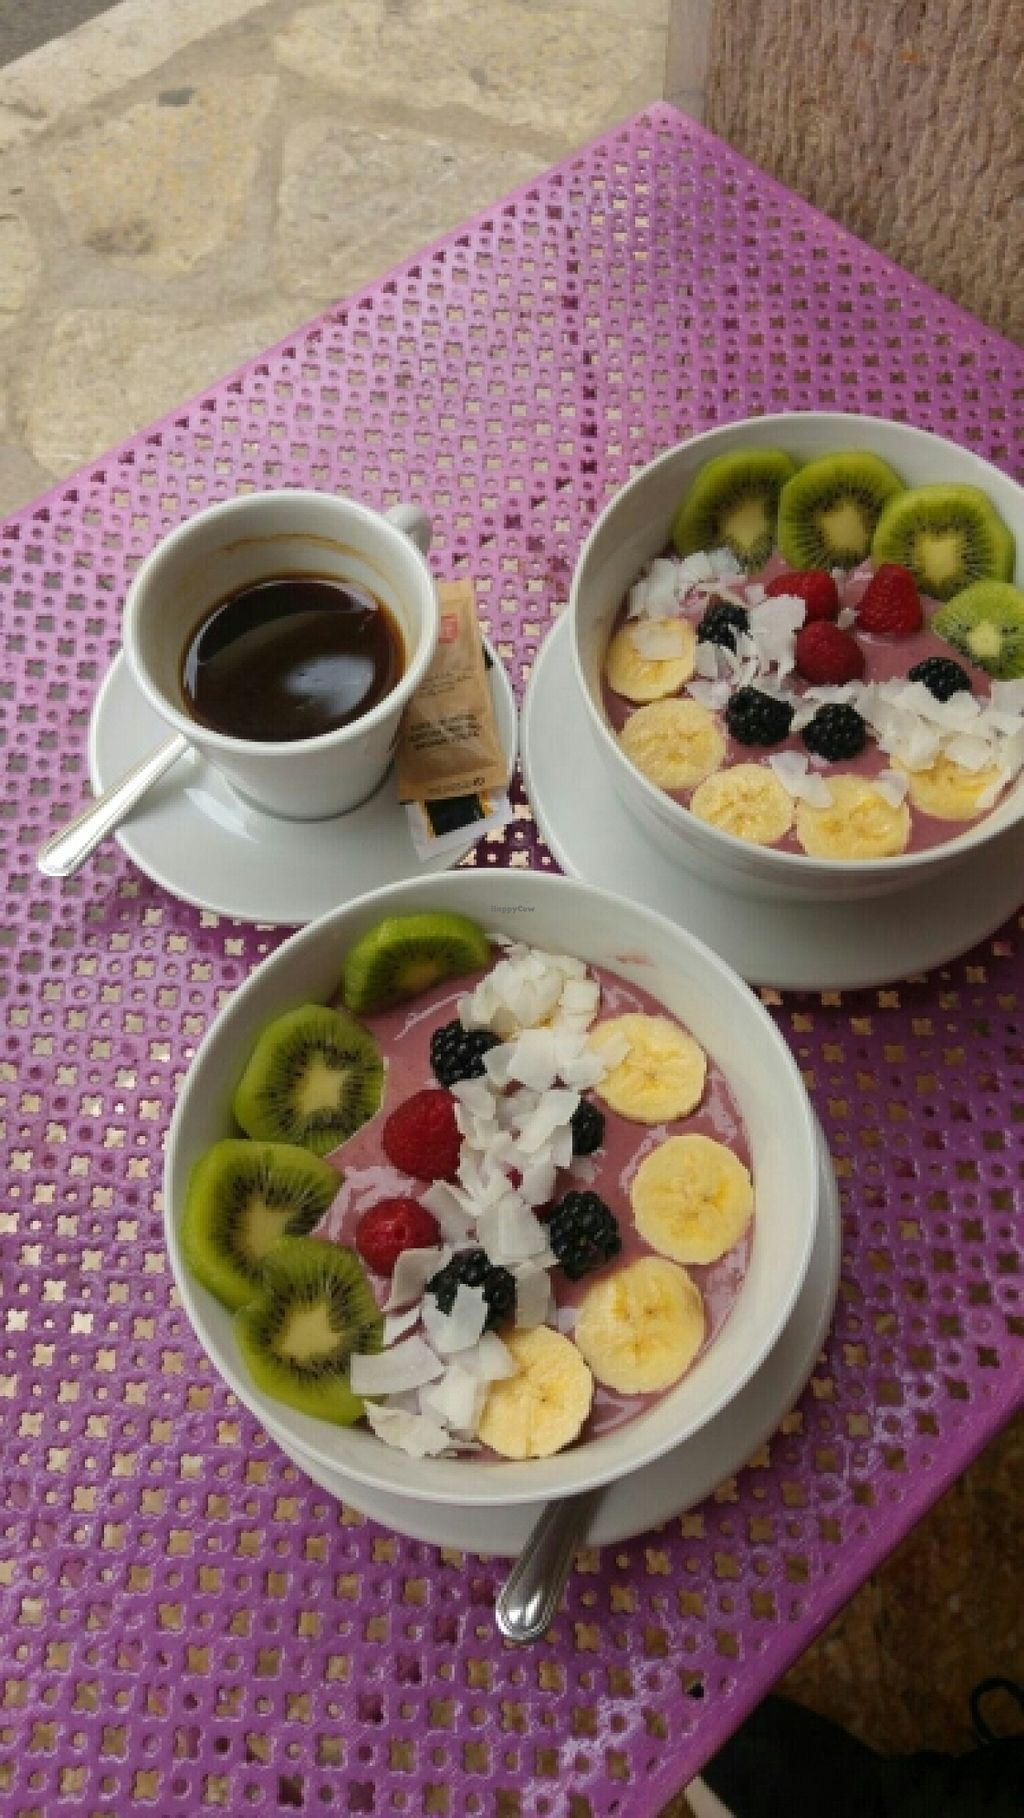 """Photo of Acai  by <a href=""""/members/profile/Melissaj1990"""">Melissaj1990</a> <br/>Acai bowls  <br/> July 8, 2016  - <a href='/contact/abuse/image/73437/158401'>Report</a>"""